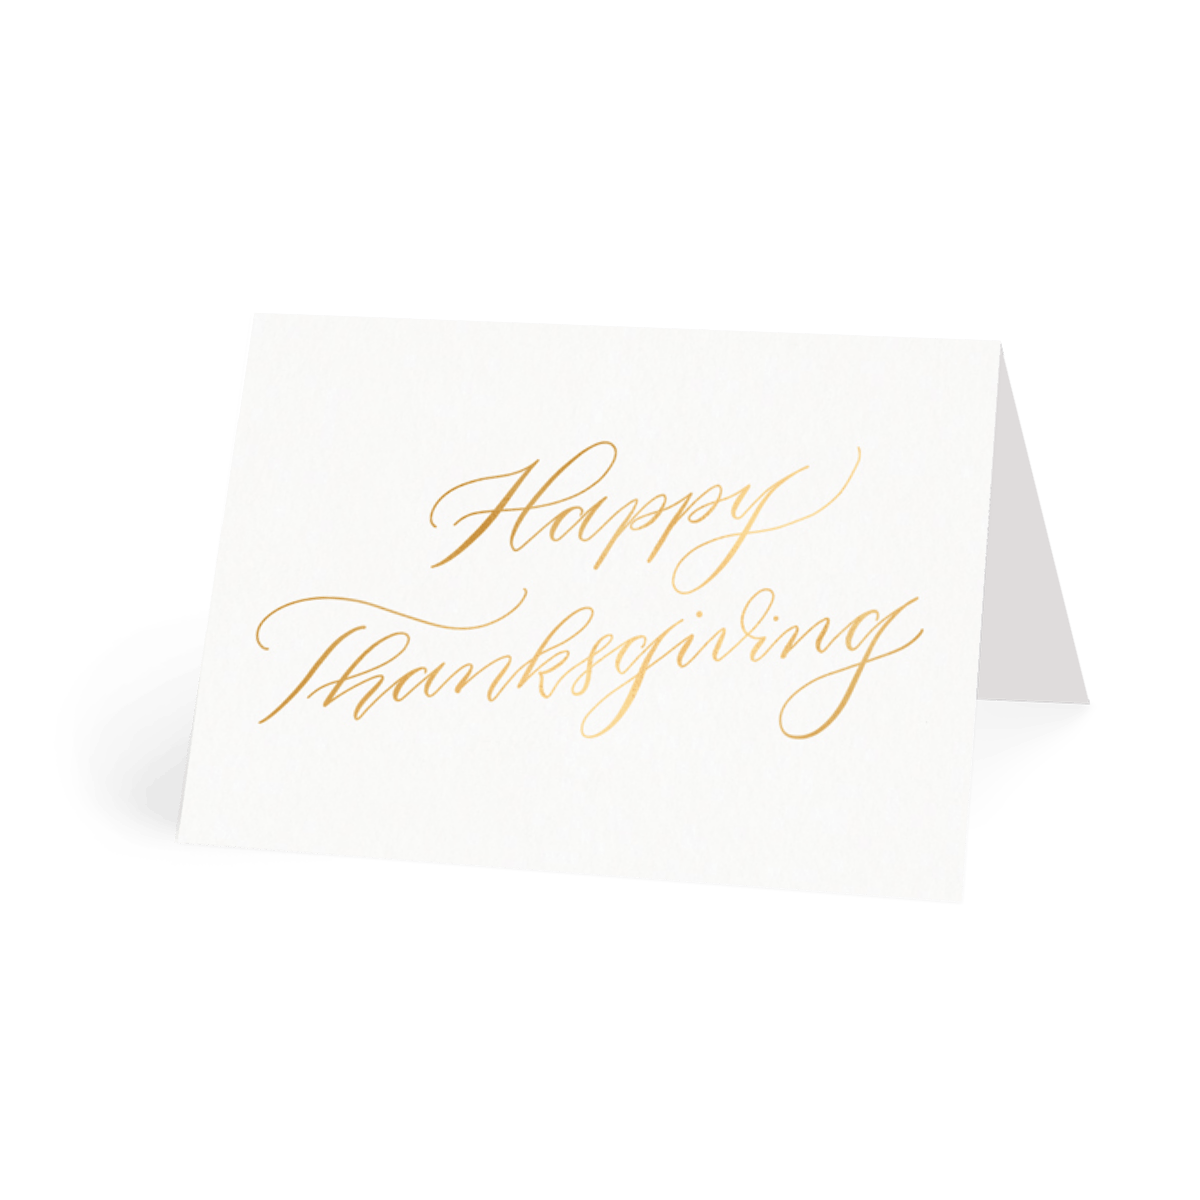 Https%3a%2f%2fwww.papier.com%2fproduct image%2f51017%2f14%2fhappy thanksgiving gold 12492 front 1540913572.png?ixlib=rb 1.1